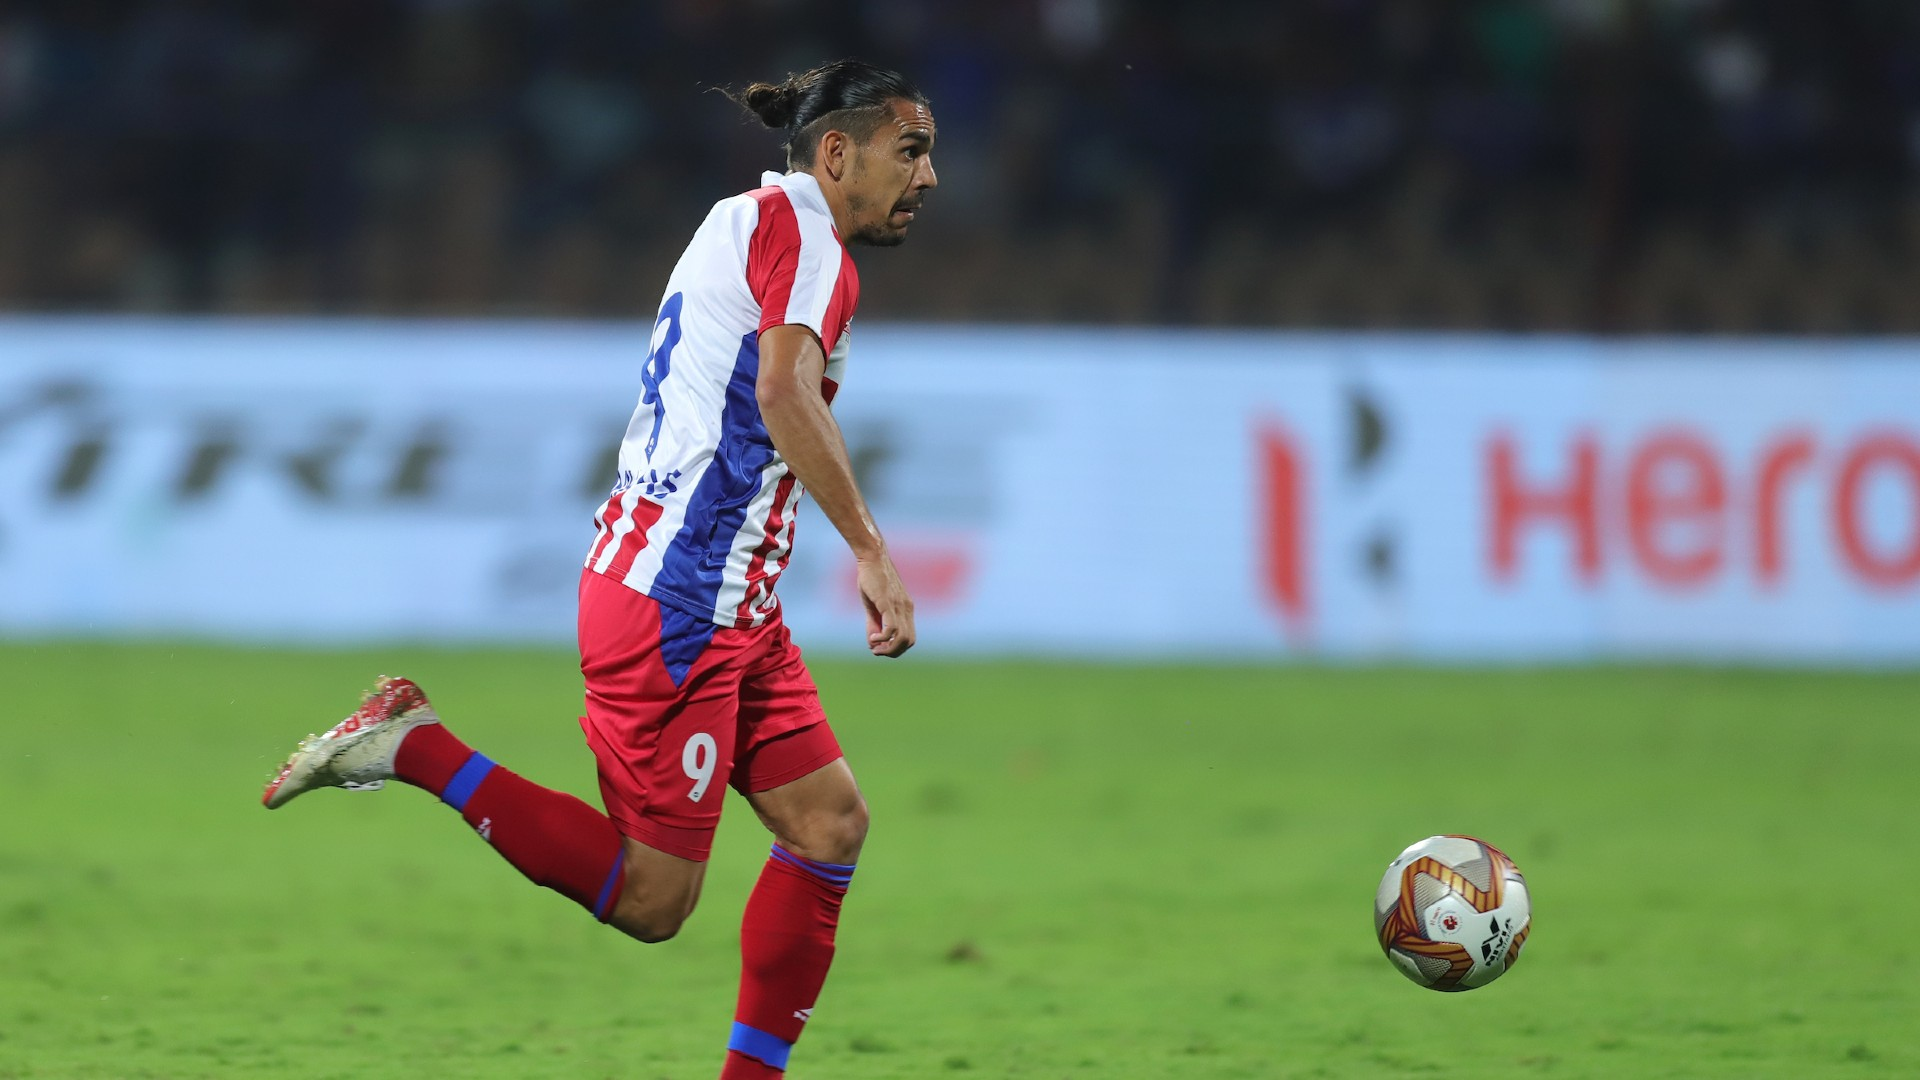 ISL 2019-20: ATK star David Williams peaking at the right time